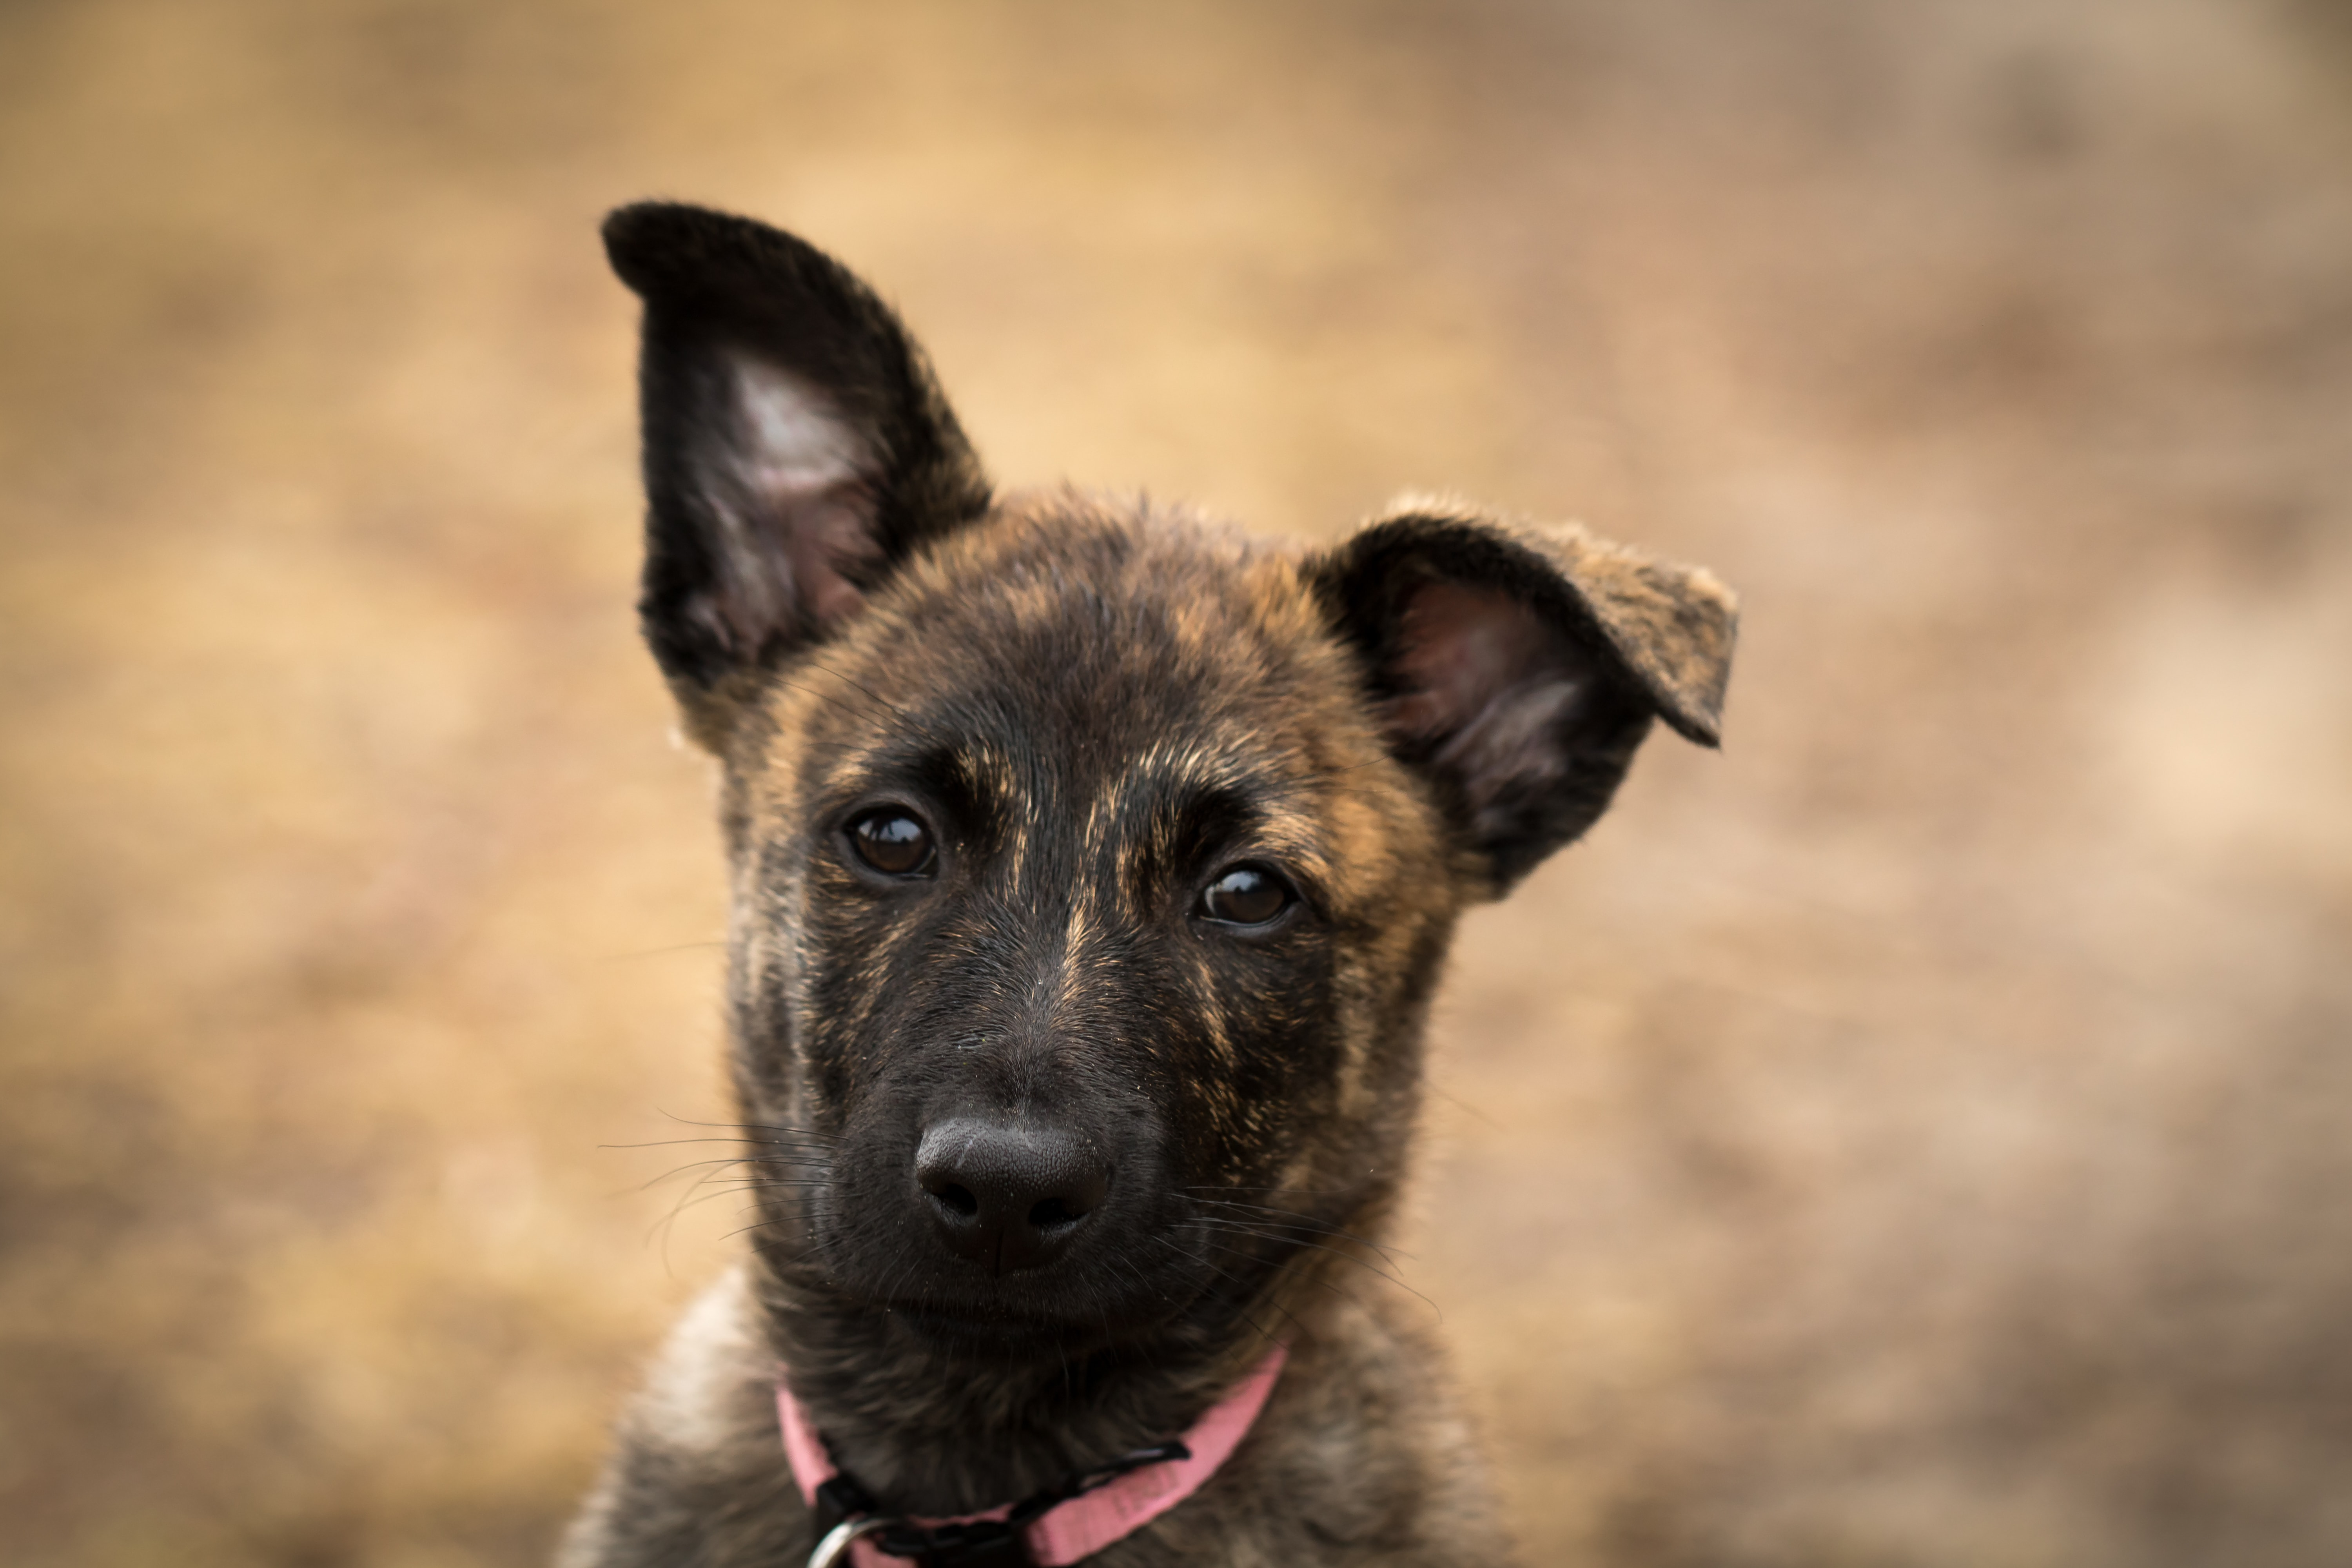 The Dutch Shepherd - Loyal and Reliable